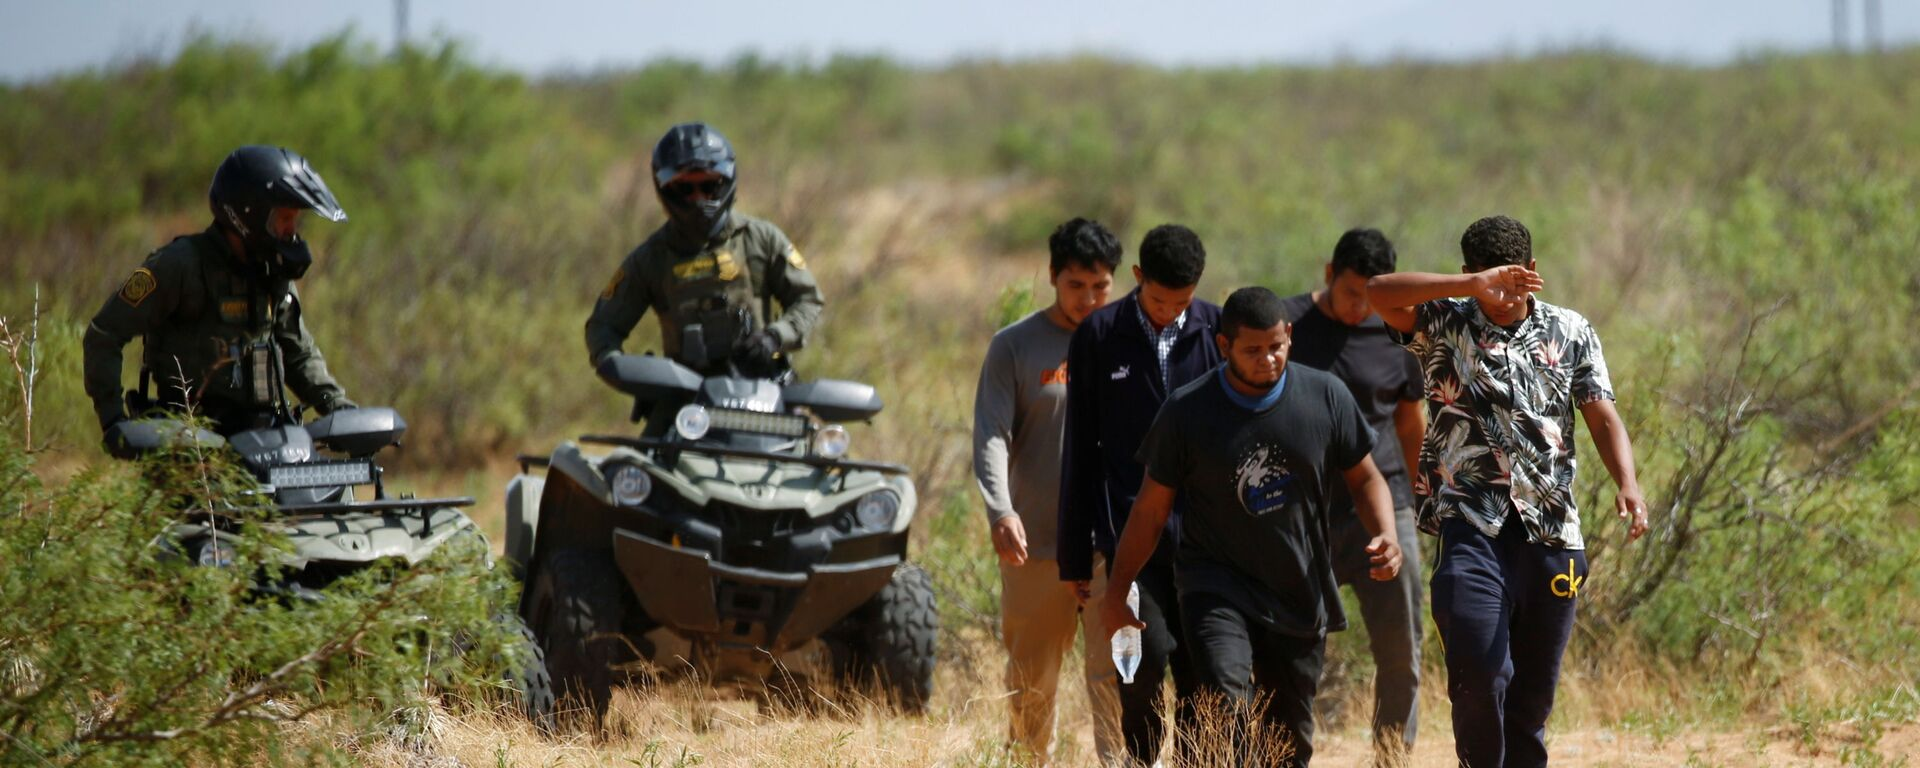 Migrants from Central America are detained by a U.S. Customs and Border Protection (CBP) agent after crossing into the United States from Mexico, in Sunland Park, New Mexico, U.S. July 15, 2021 - Sputnik International, 1920, 01.08.2021